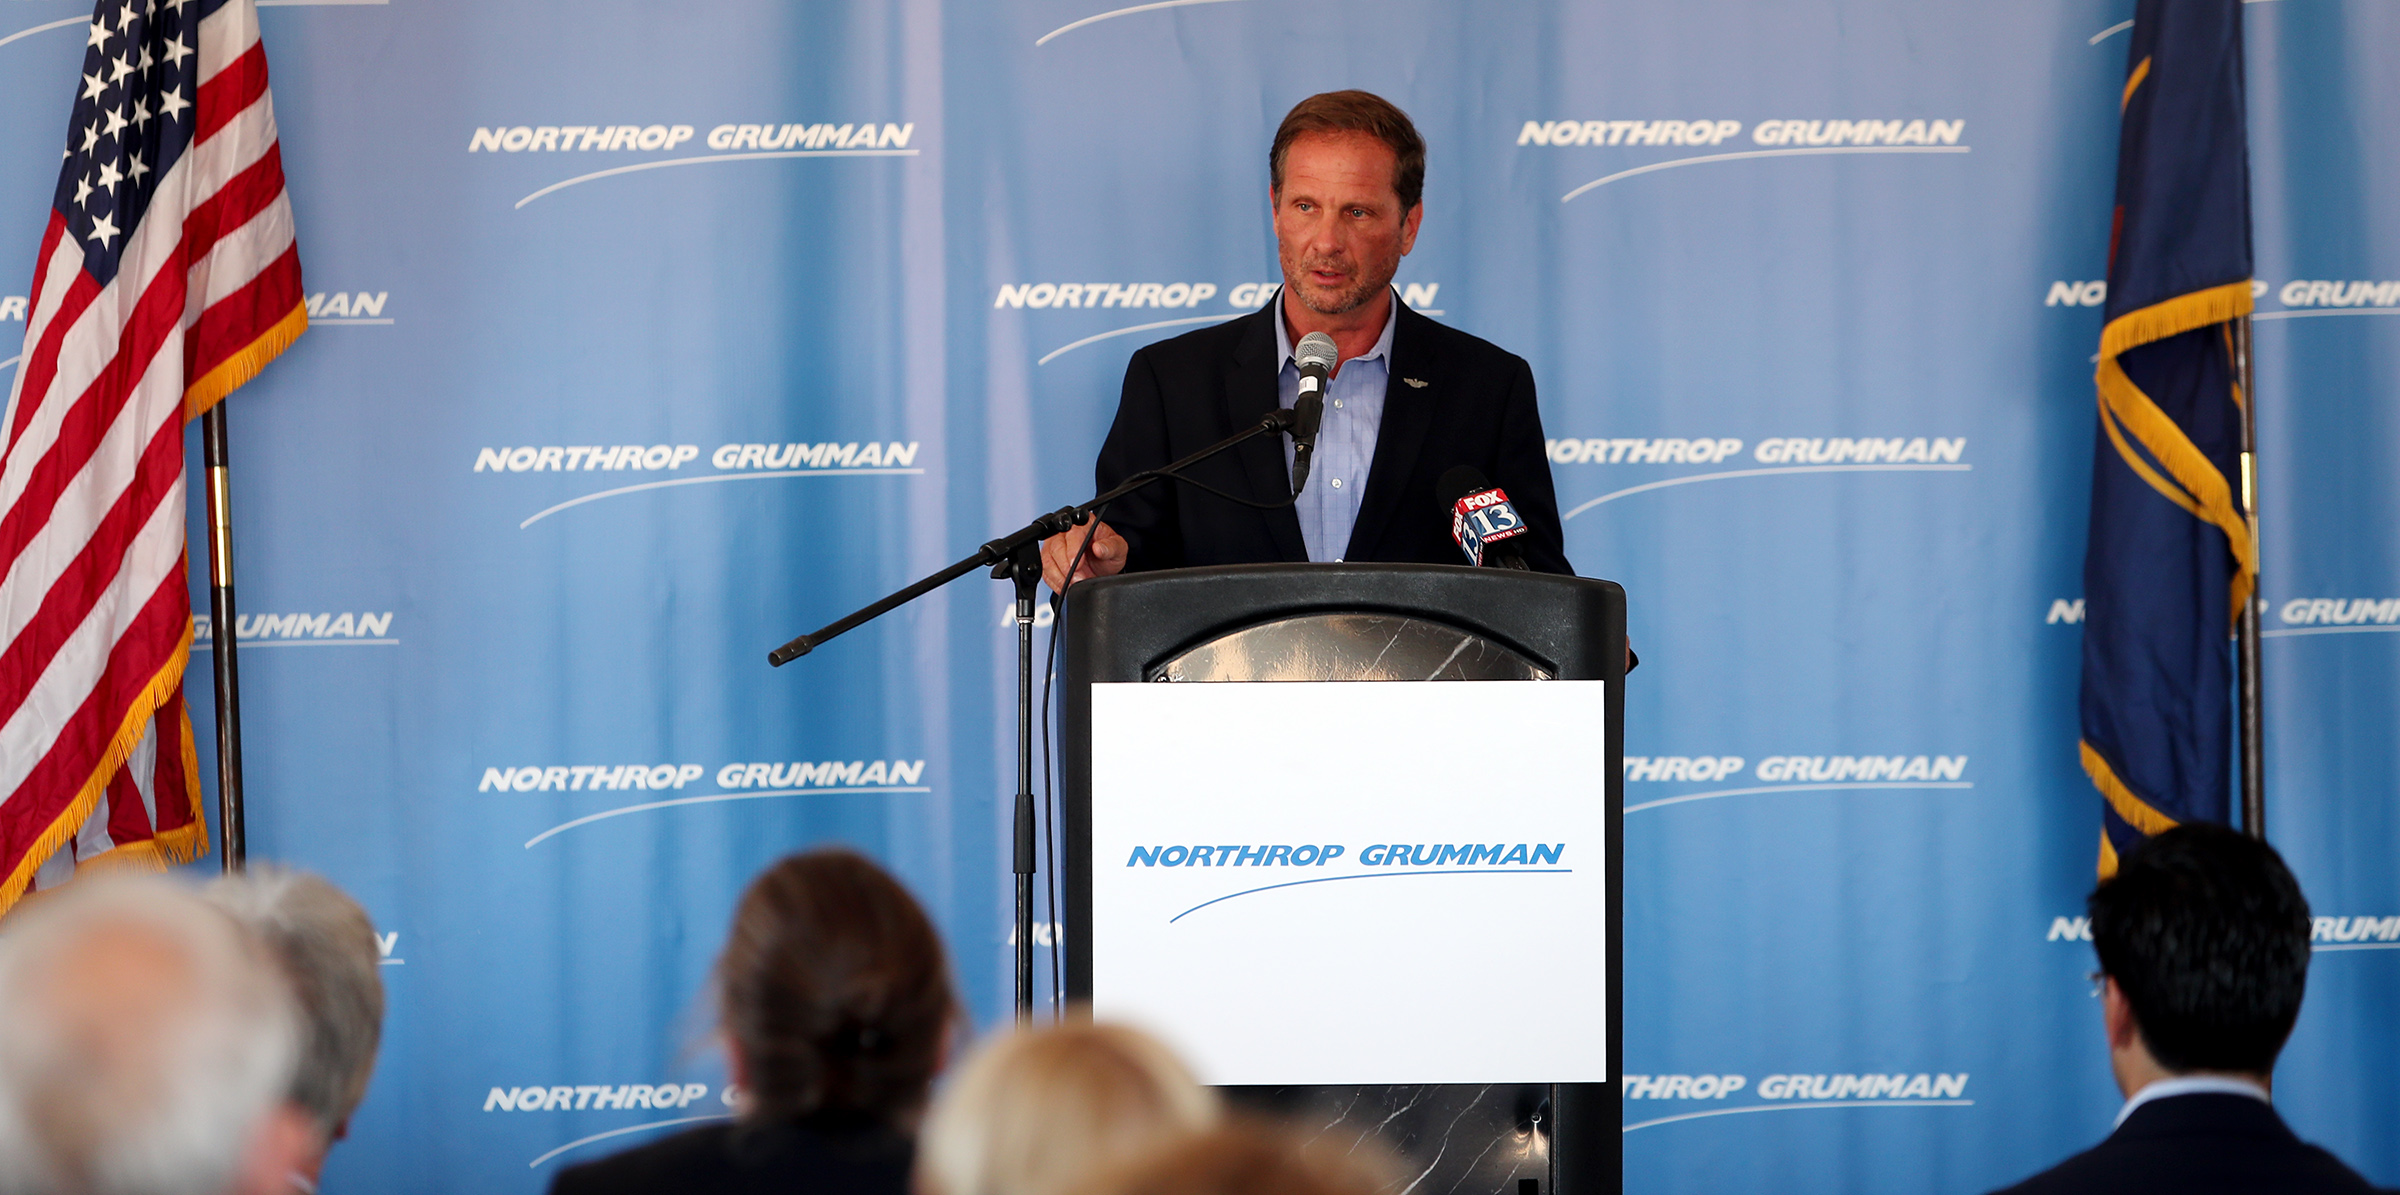 Rep. Chris Stewart, R-Utah, speaks during a groundbreaking ceremony for Northrop Grumman's missile defense development facility in Roy on Tuesday, Aug. 27, 2019.